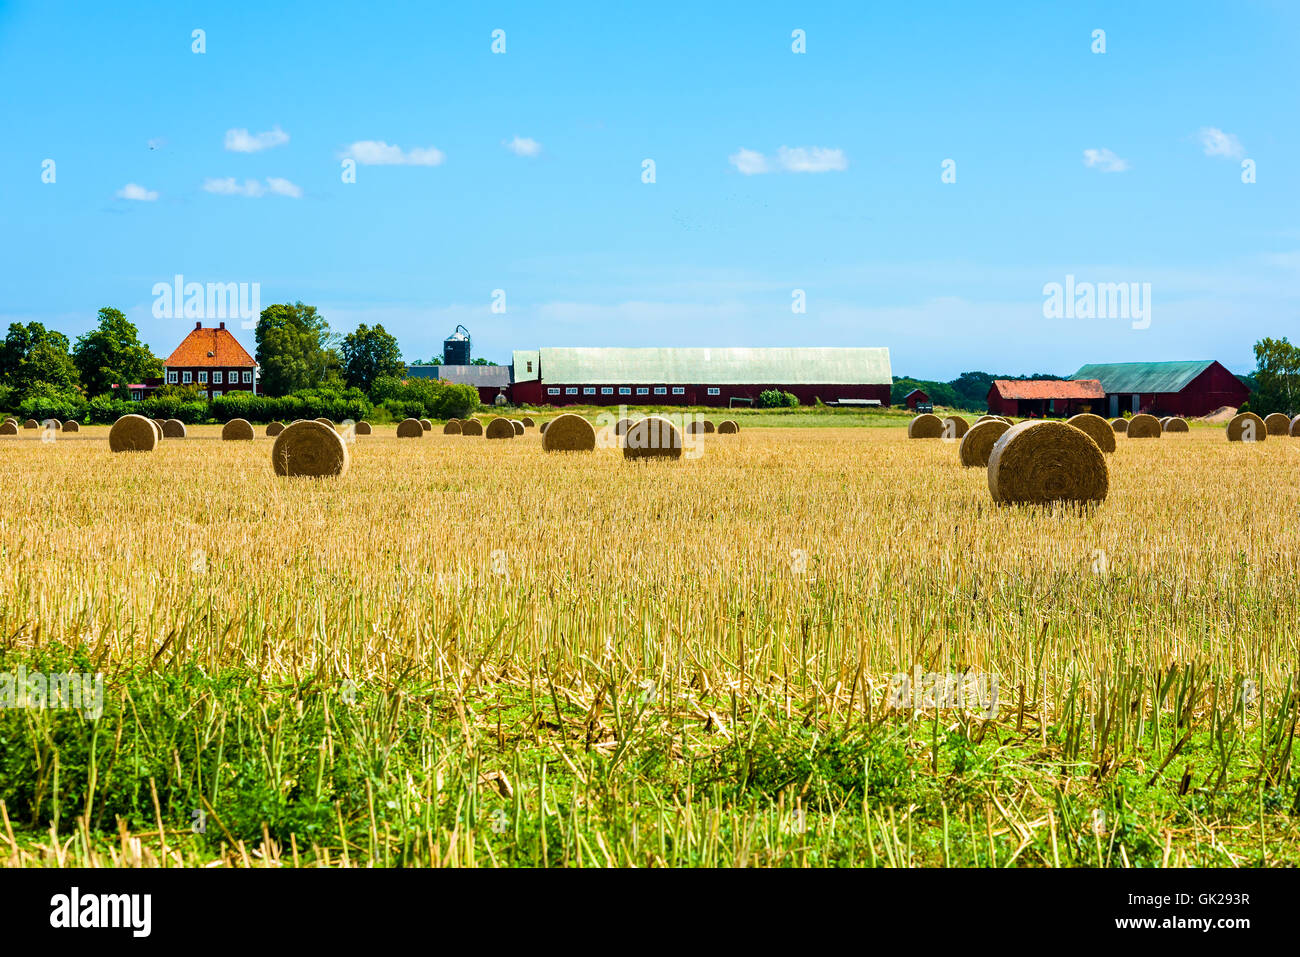 Kalmar, Sweden - August 10, 2016: Typical farmland landscape from the southeastern part of Sweden. Late summer and - Stock Image